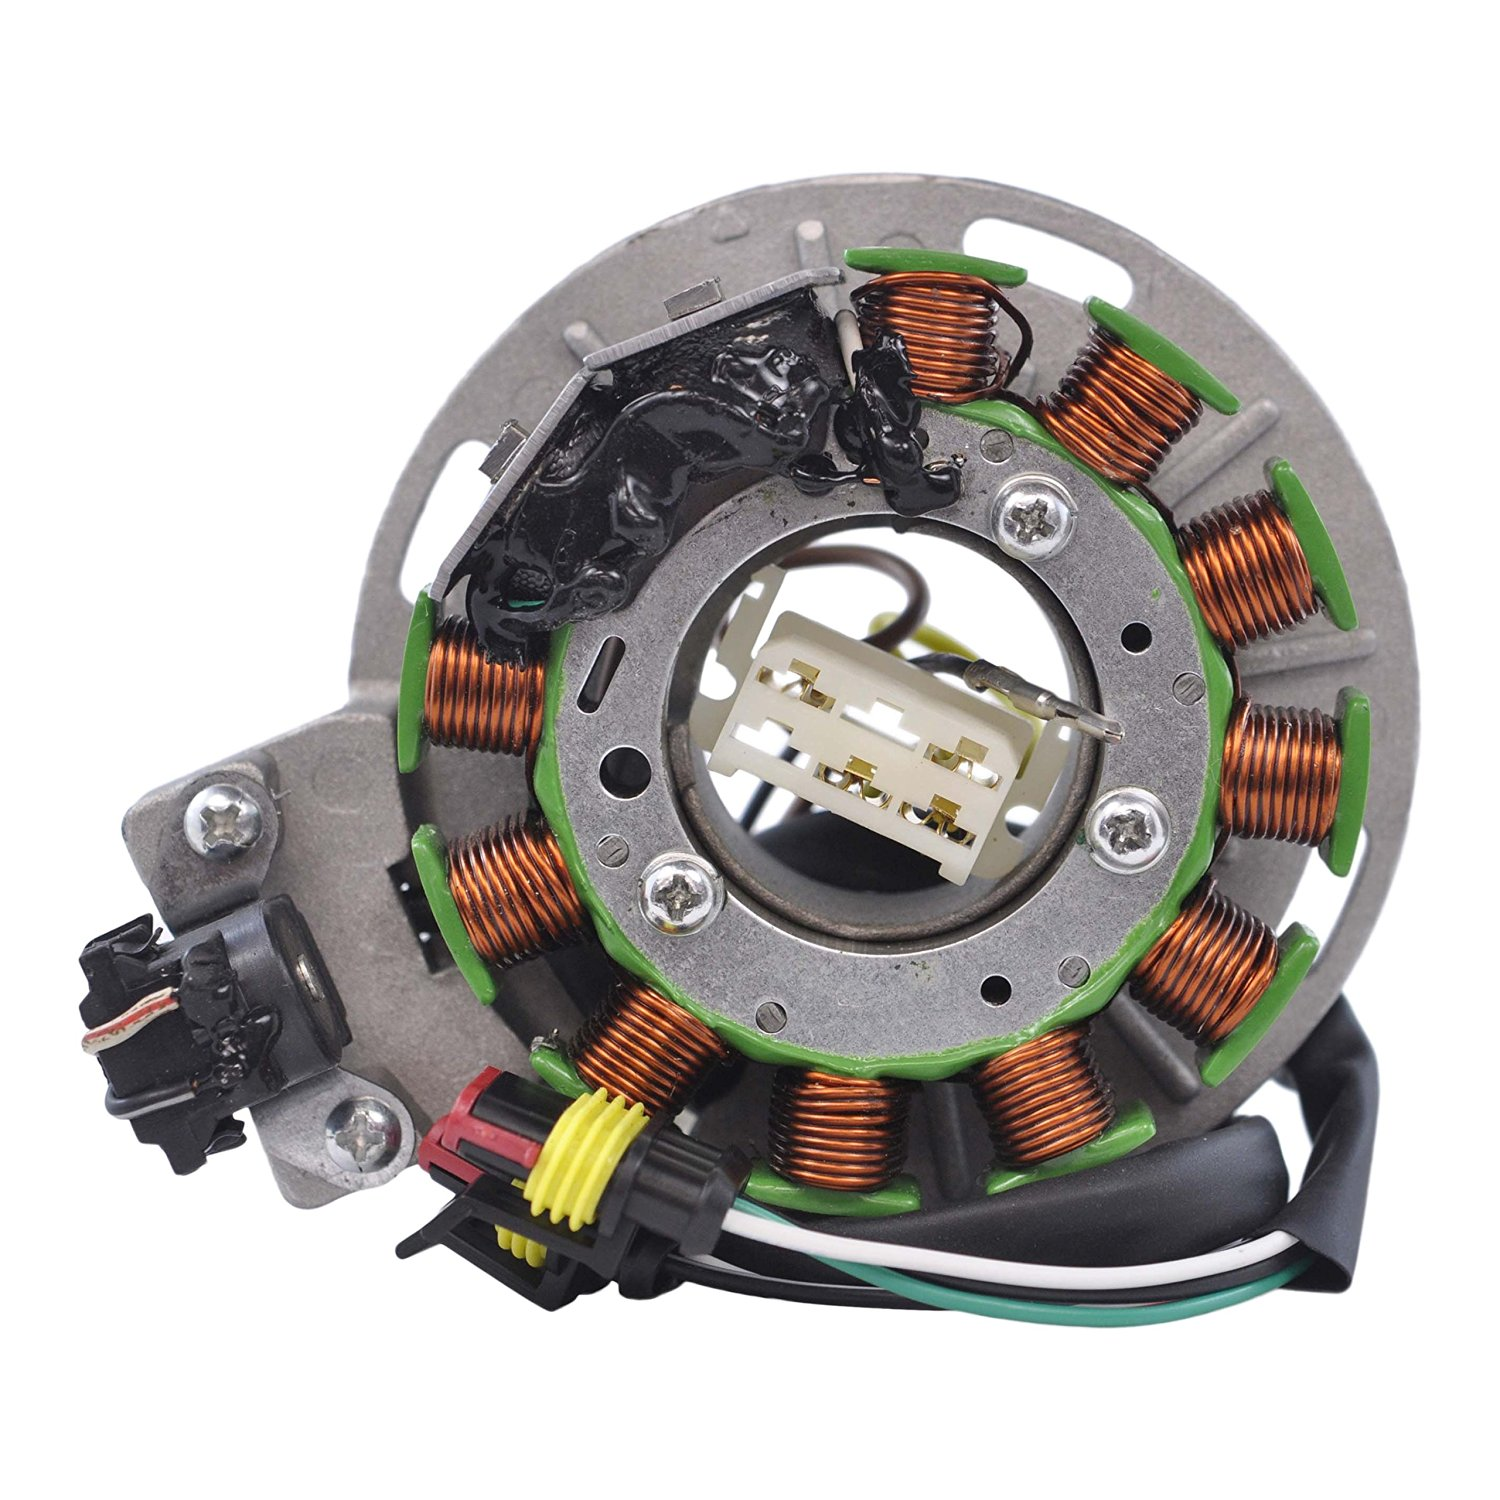 Stator for Polaris 400 XCR 600 / 700 RMK / SKS / XC 1997-2001 OEM Repl.# 4060213 4060140 4060185 4060187